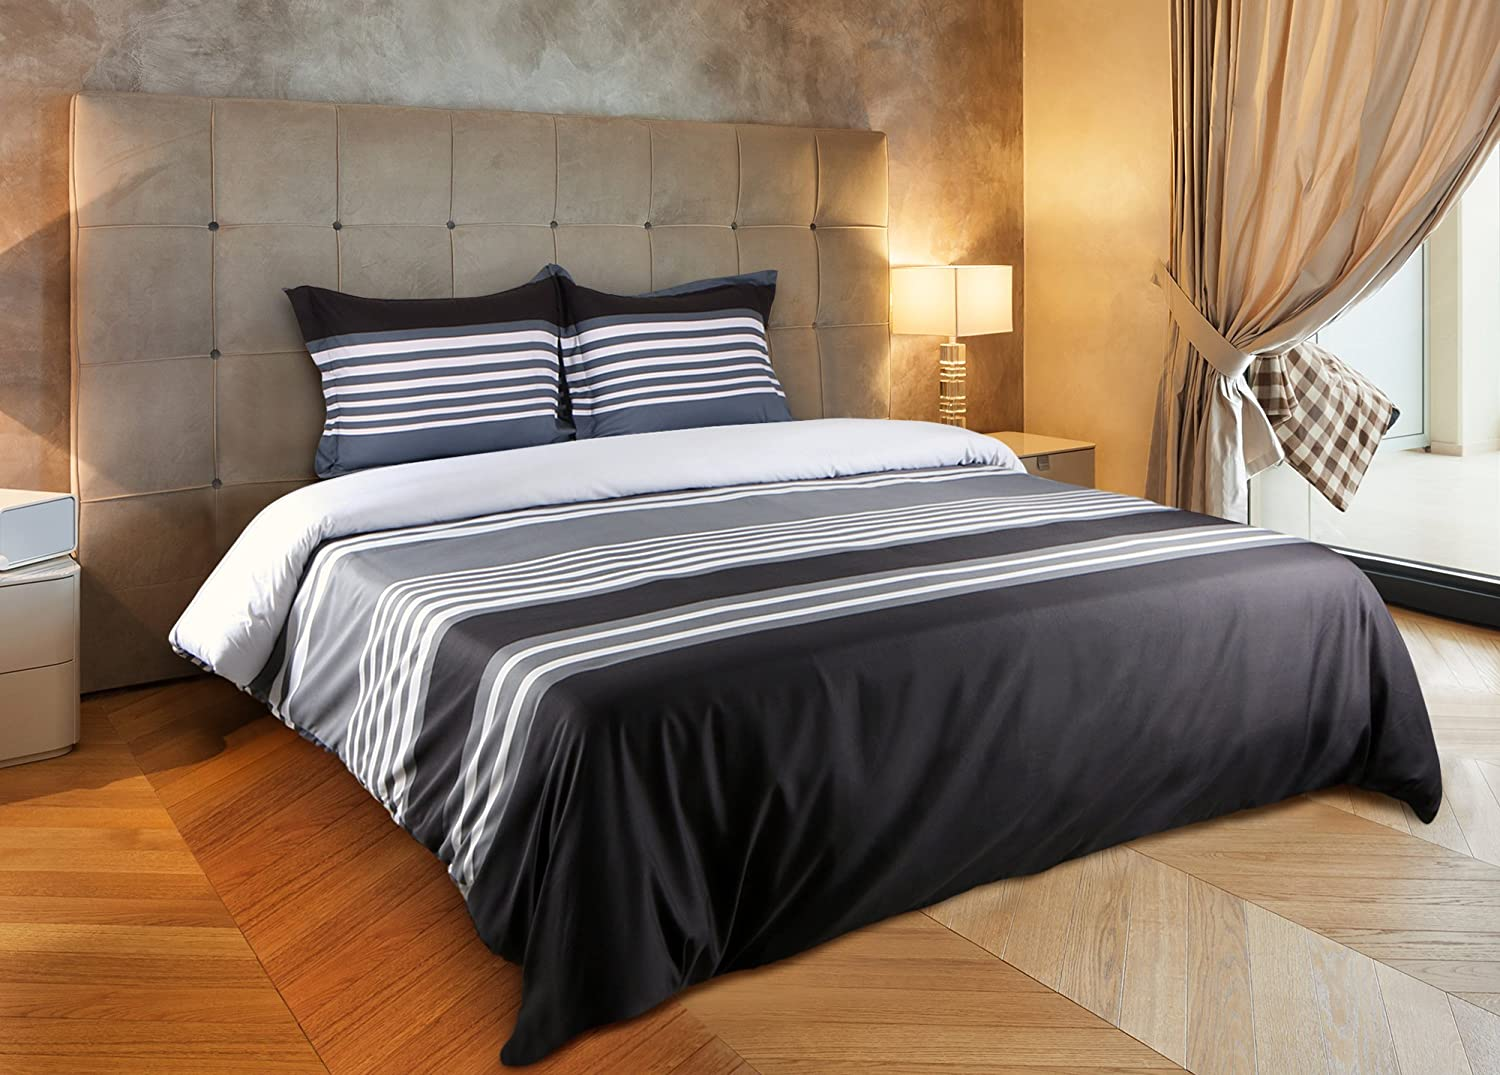 Striped Duvet Cover Set (King) - Brushed Microfiber - Luxurious Hotel Quality By Utopia Bedding